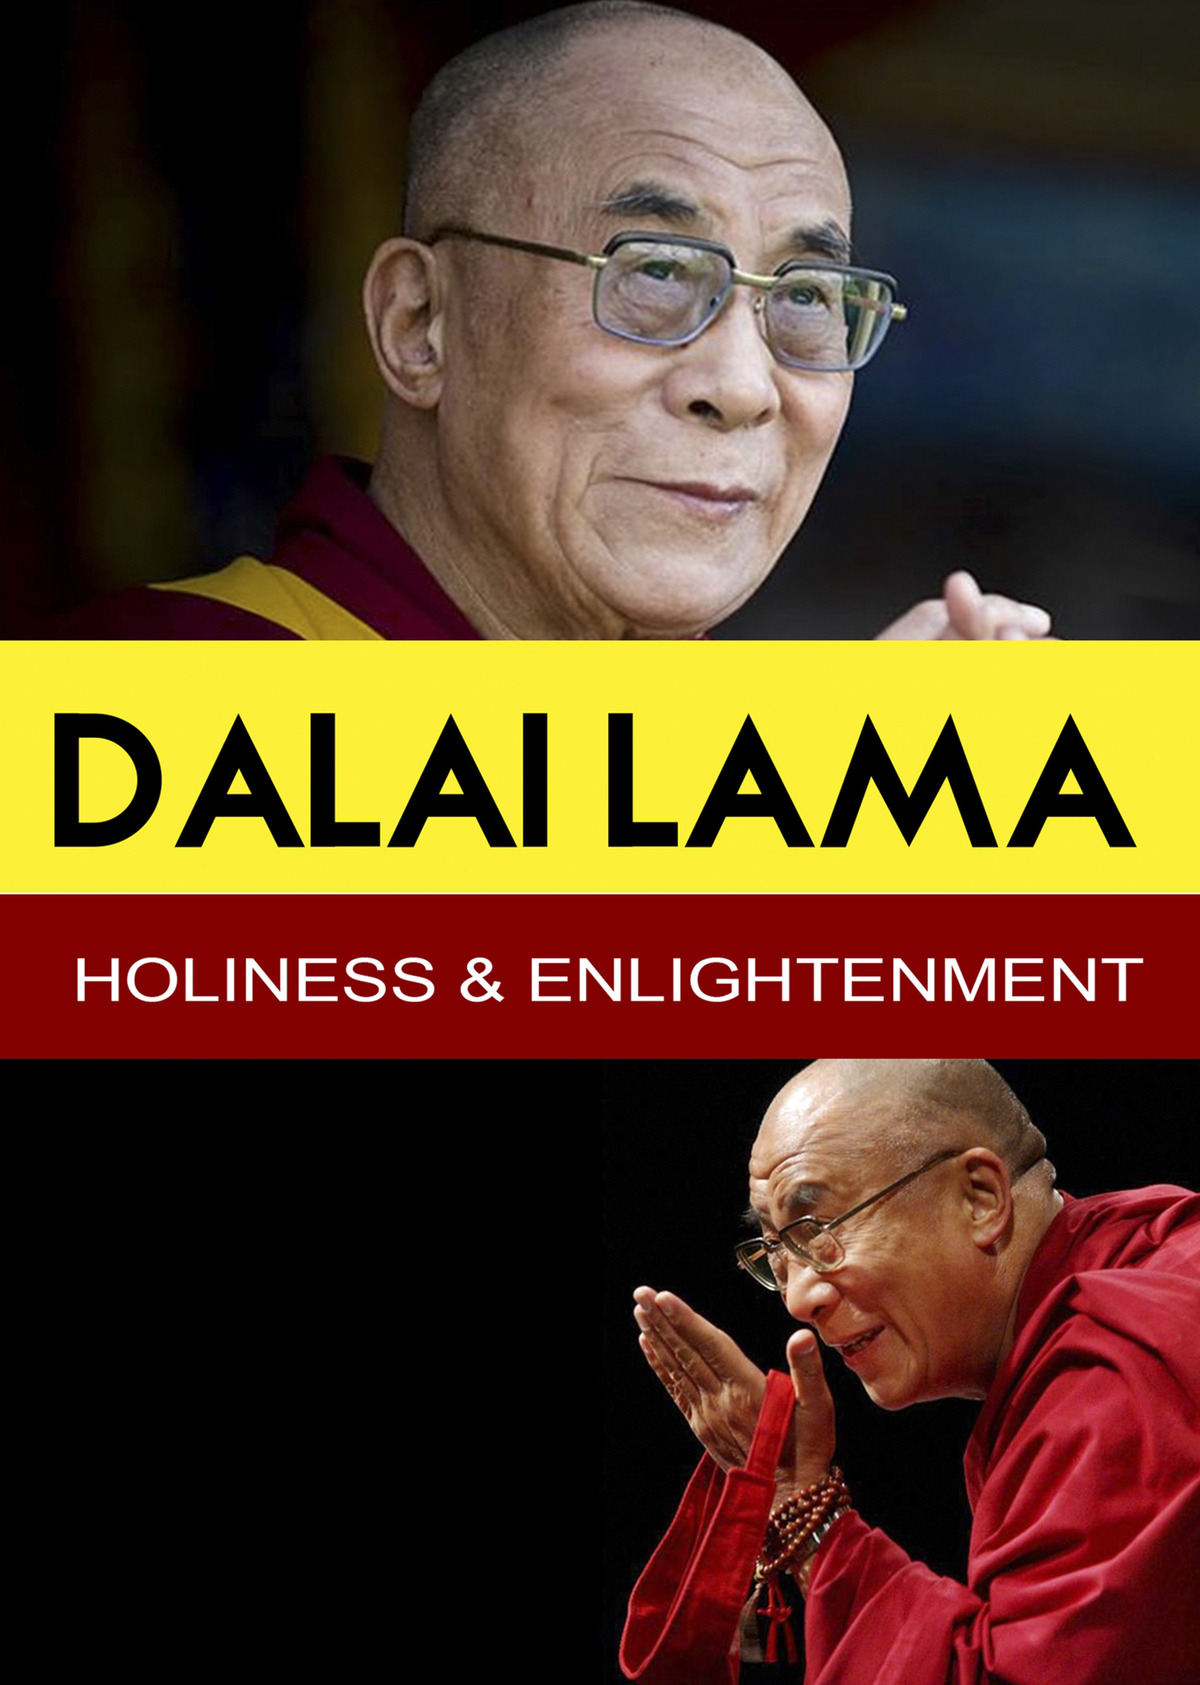 L7822 - Dalai Lama - Holiness & Enlightment